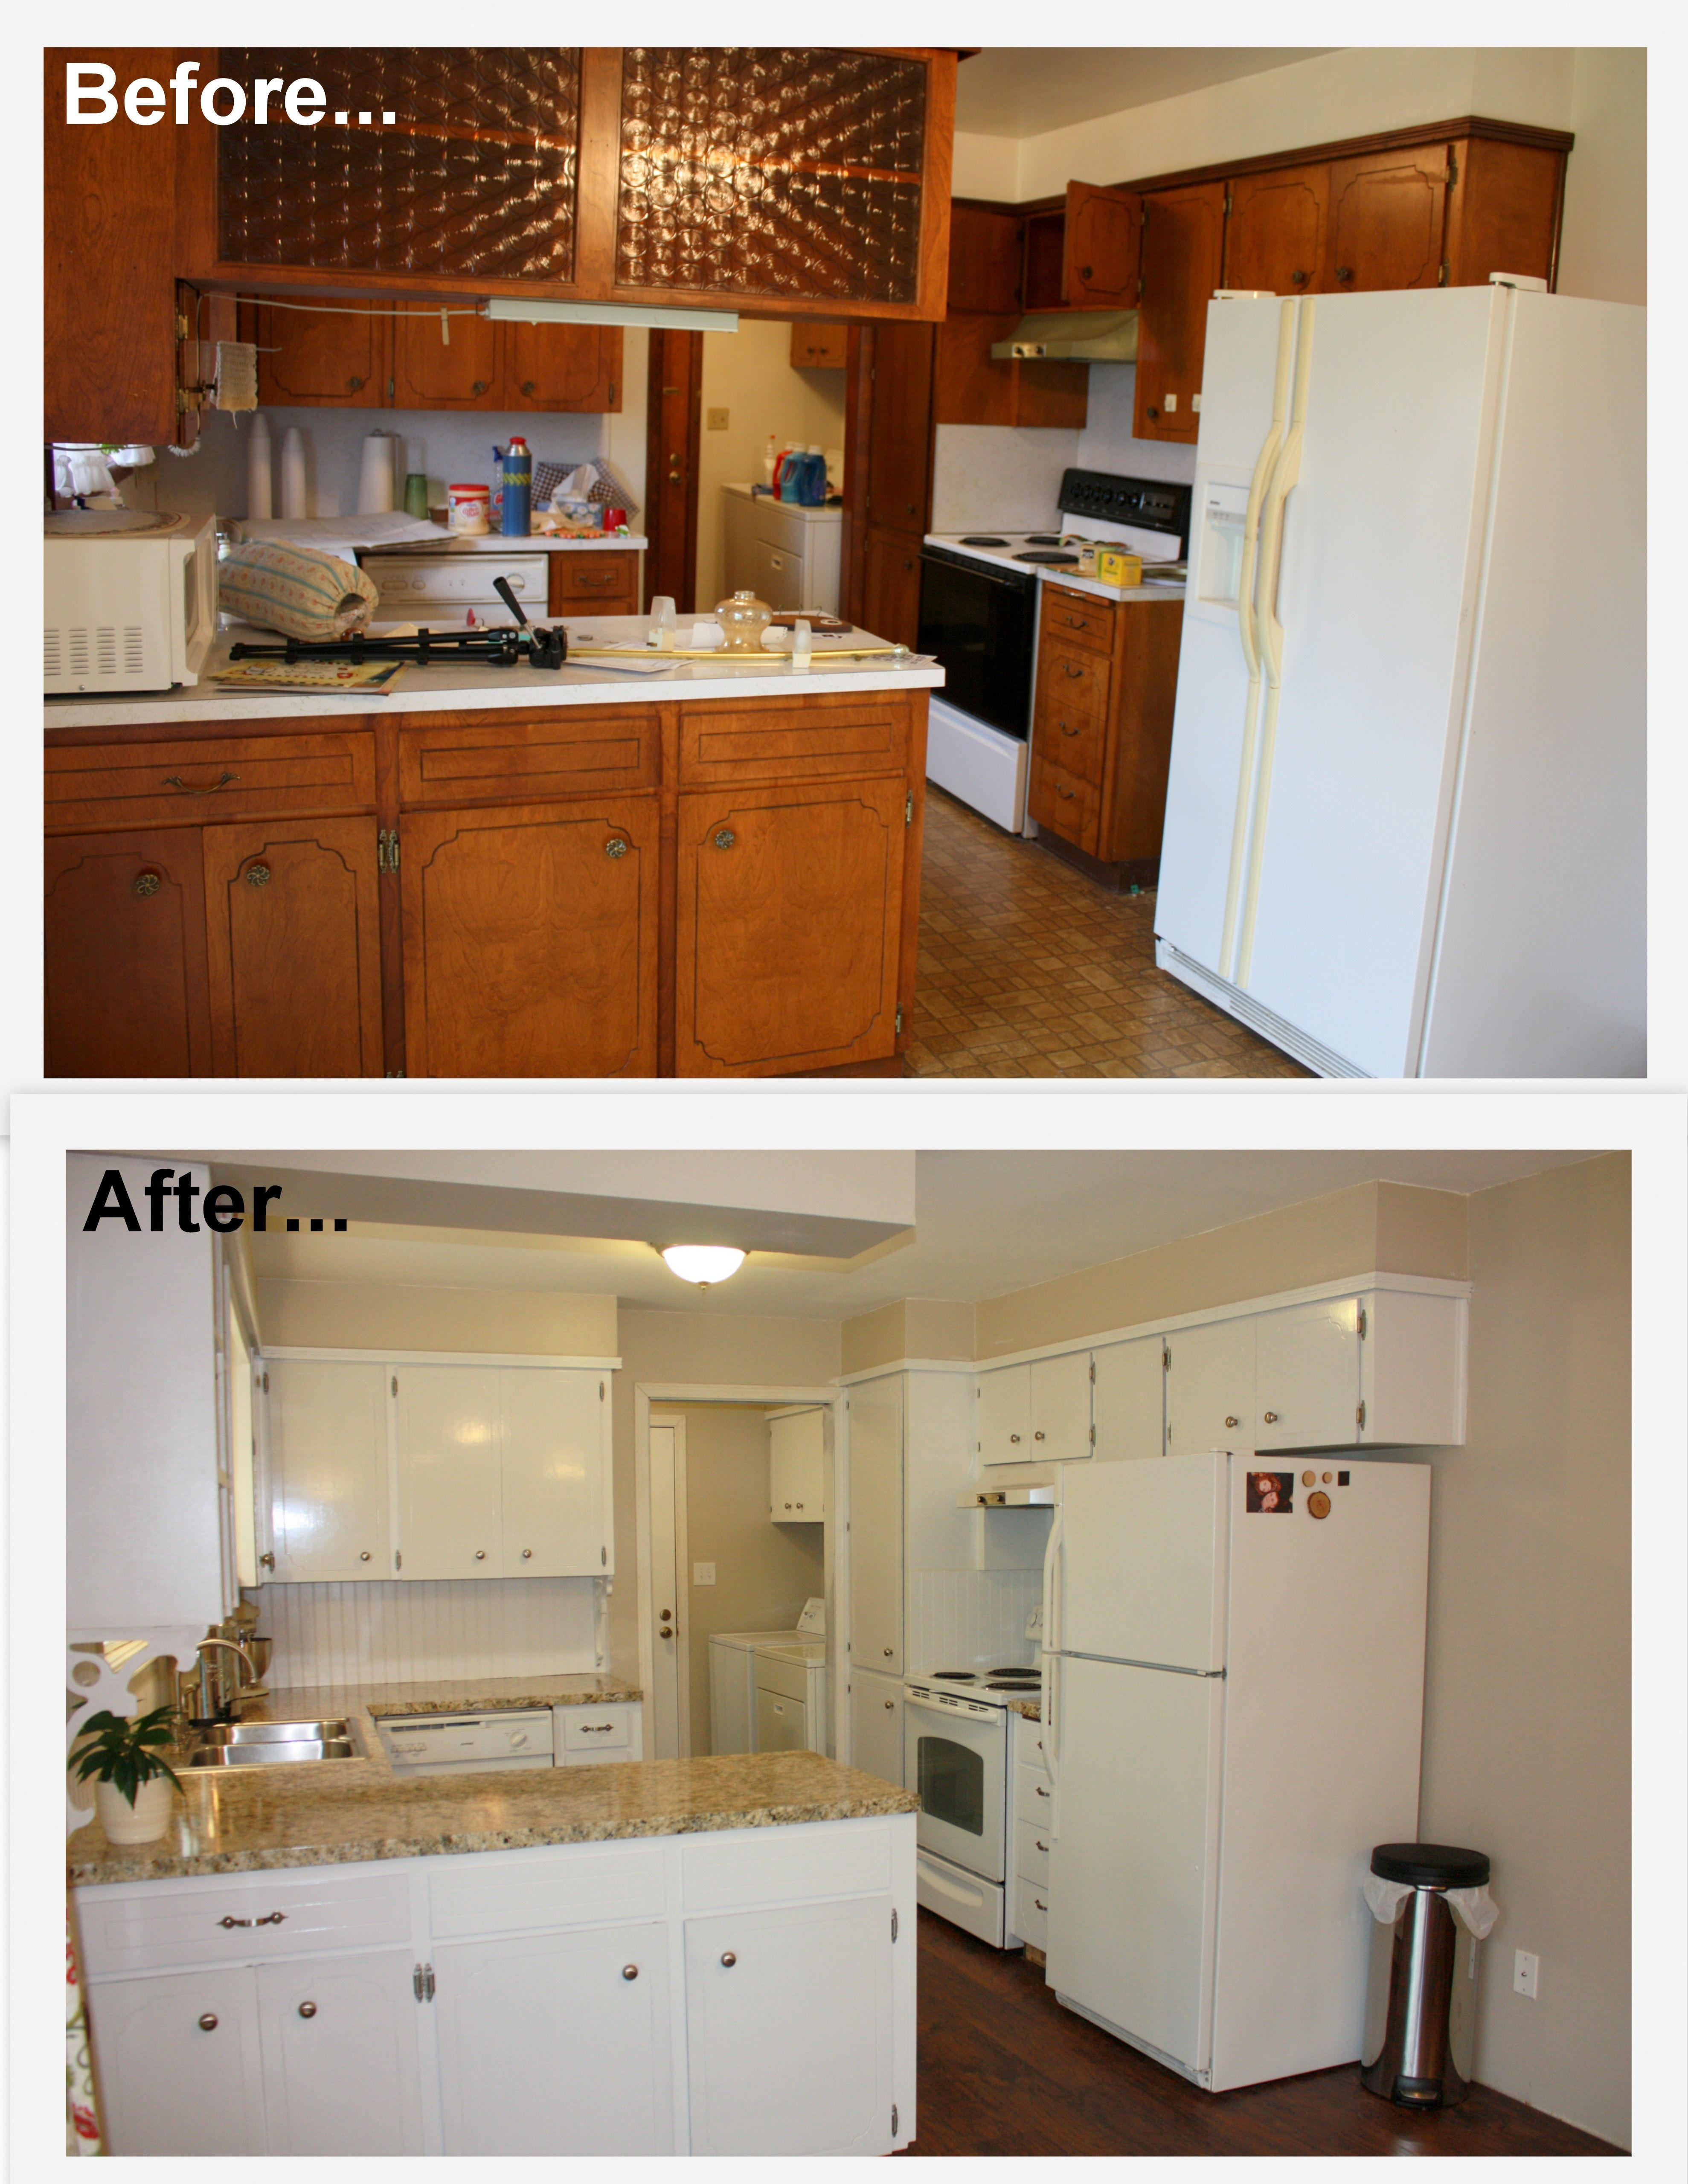 1960 S Kitchen Makeover Remodel Before And After Hardwood Flooring Painted Kitchen Cabinets Makeover Diy Kitchen Cabinets Makeover Refacing Kitchen Cabinets